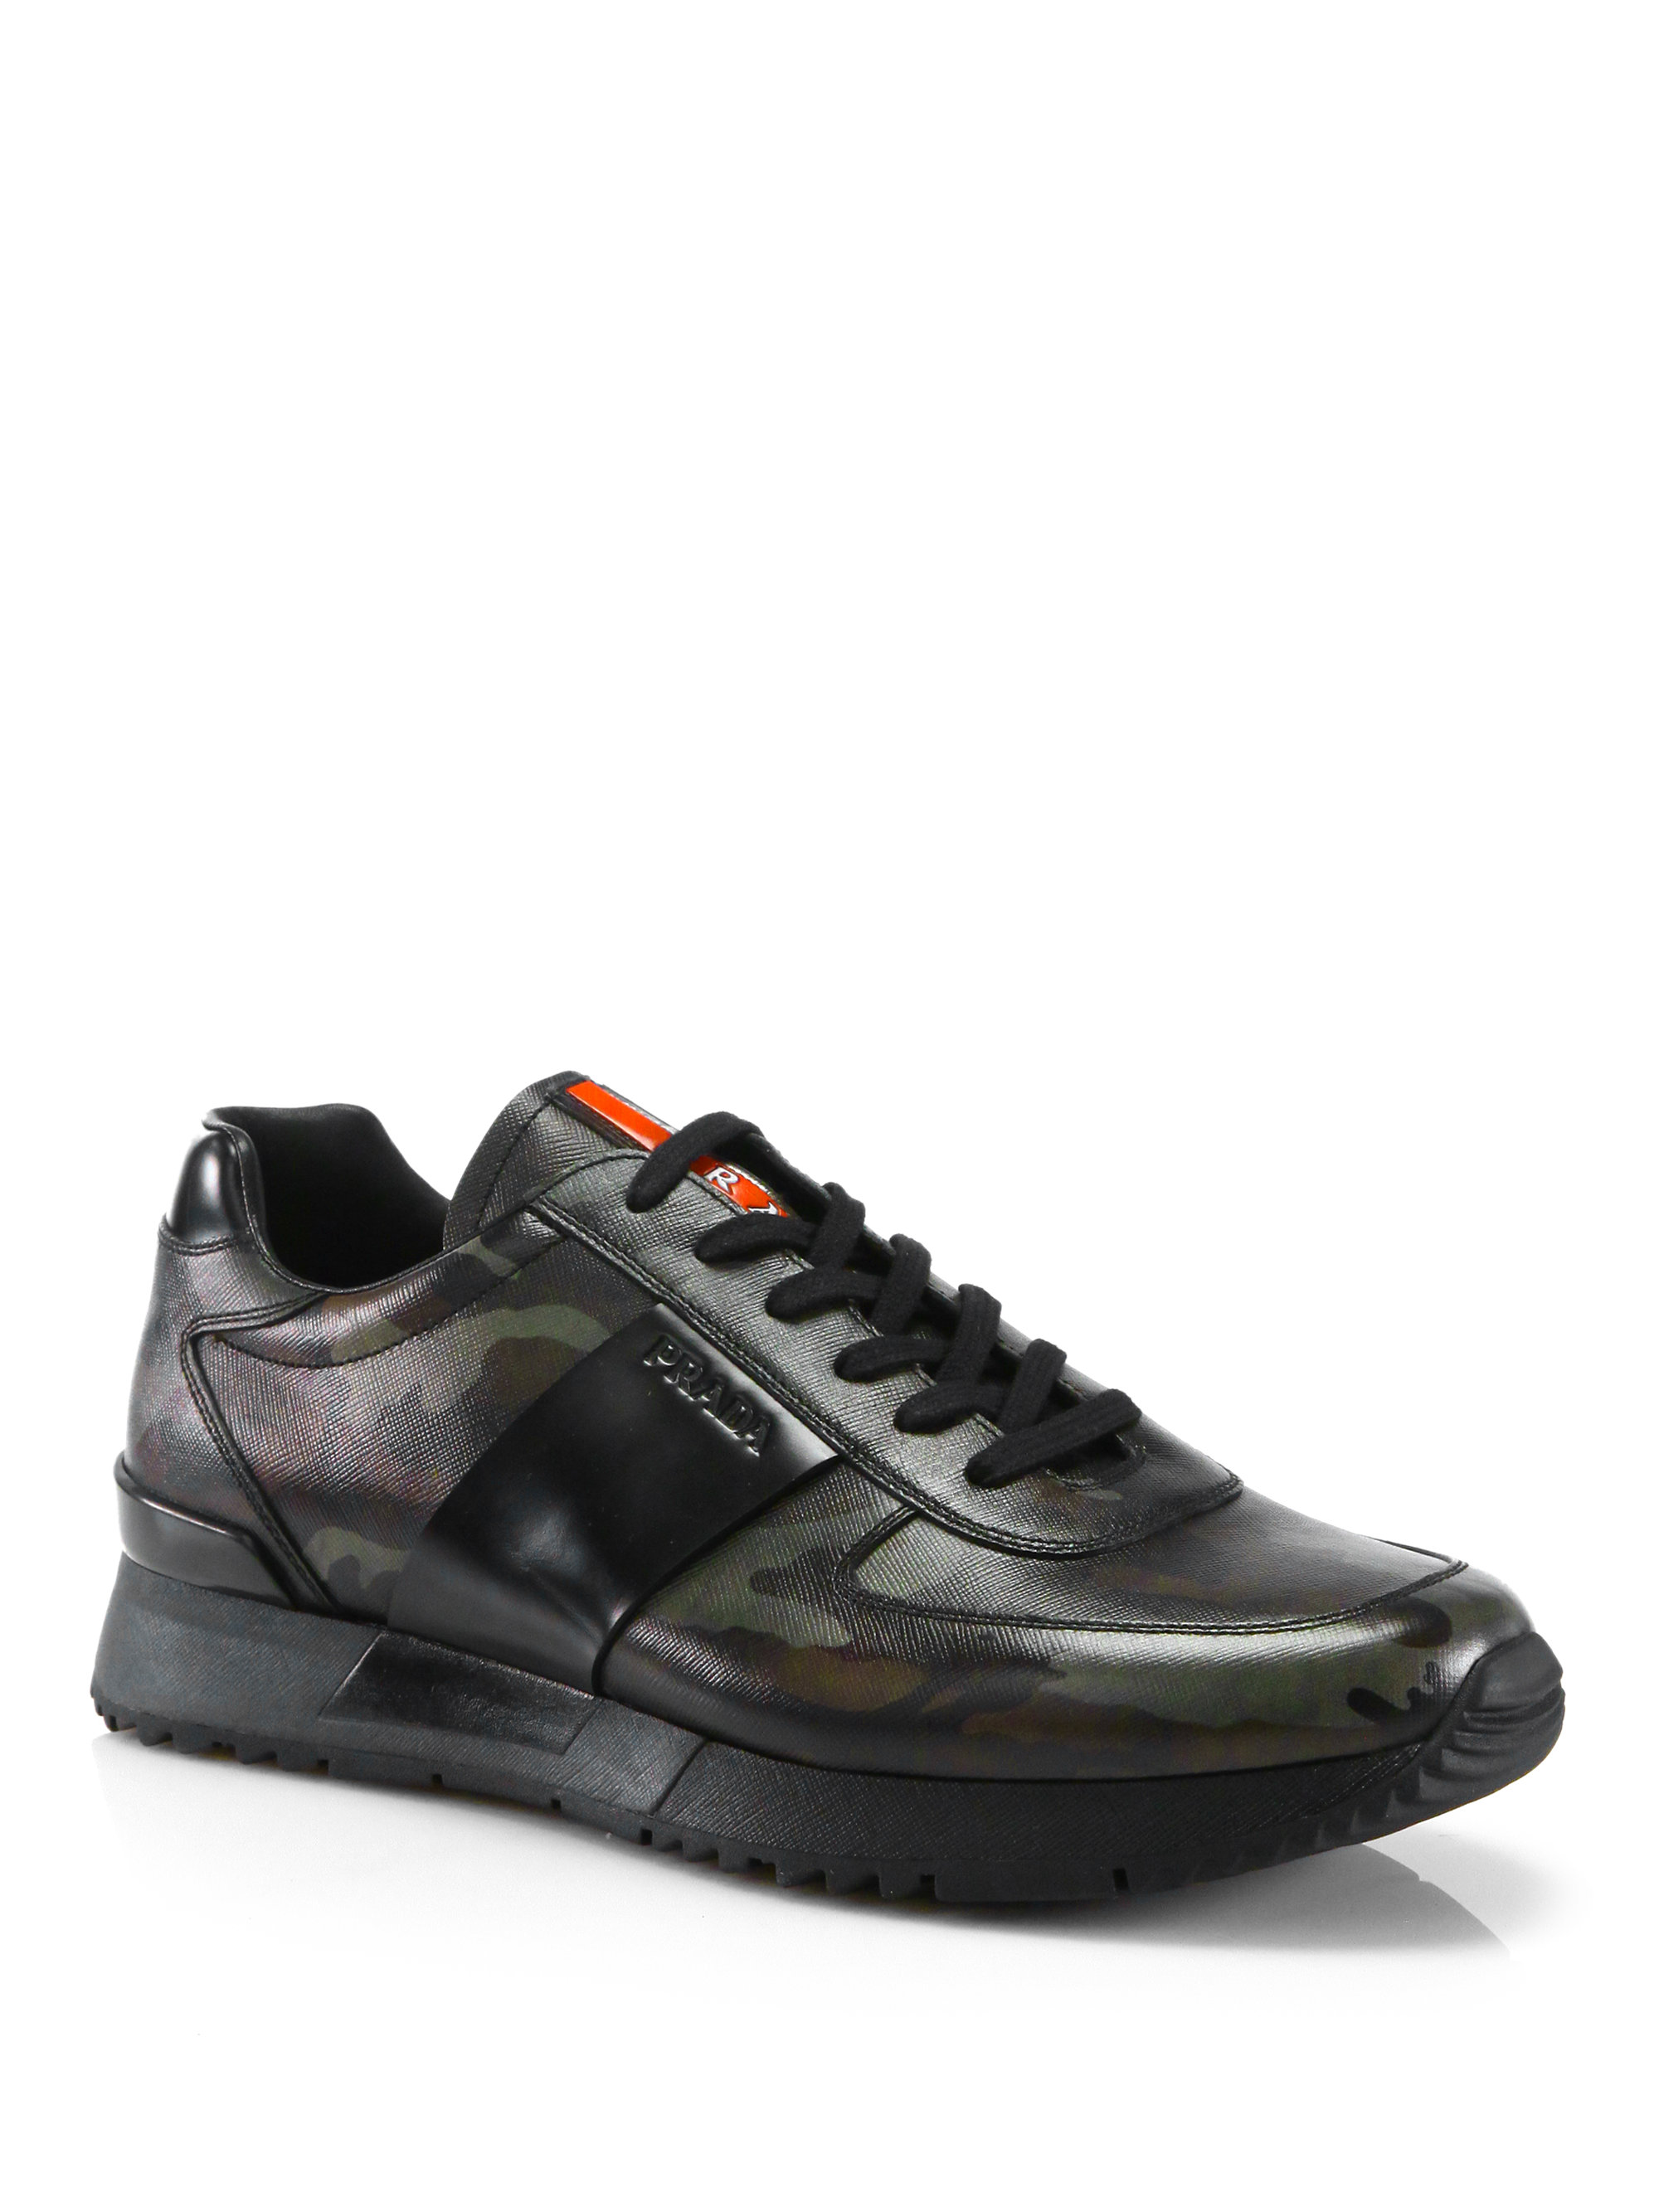 Prada Mens Shoes Saks Fifth Avenue